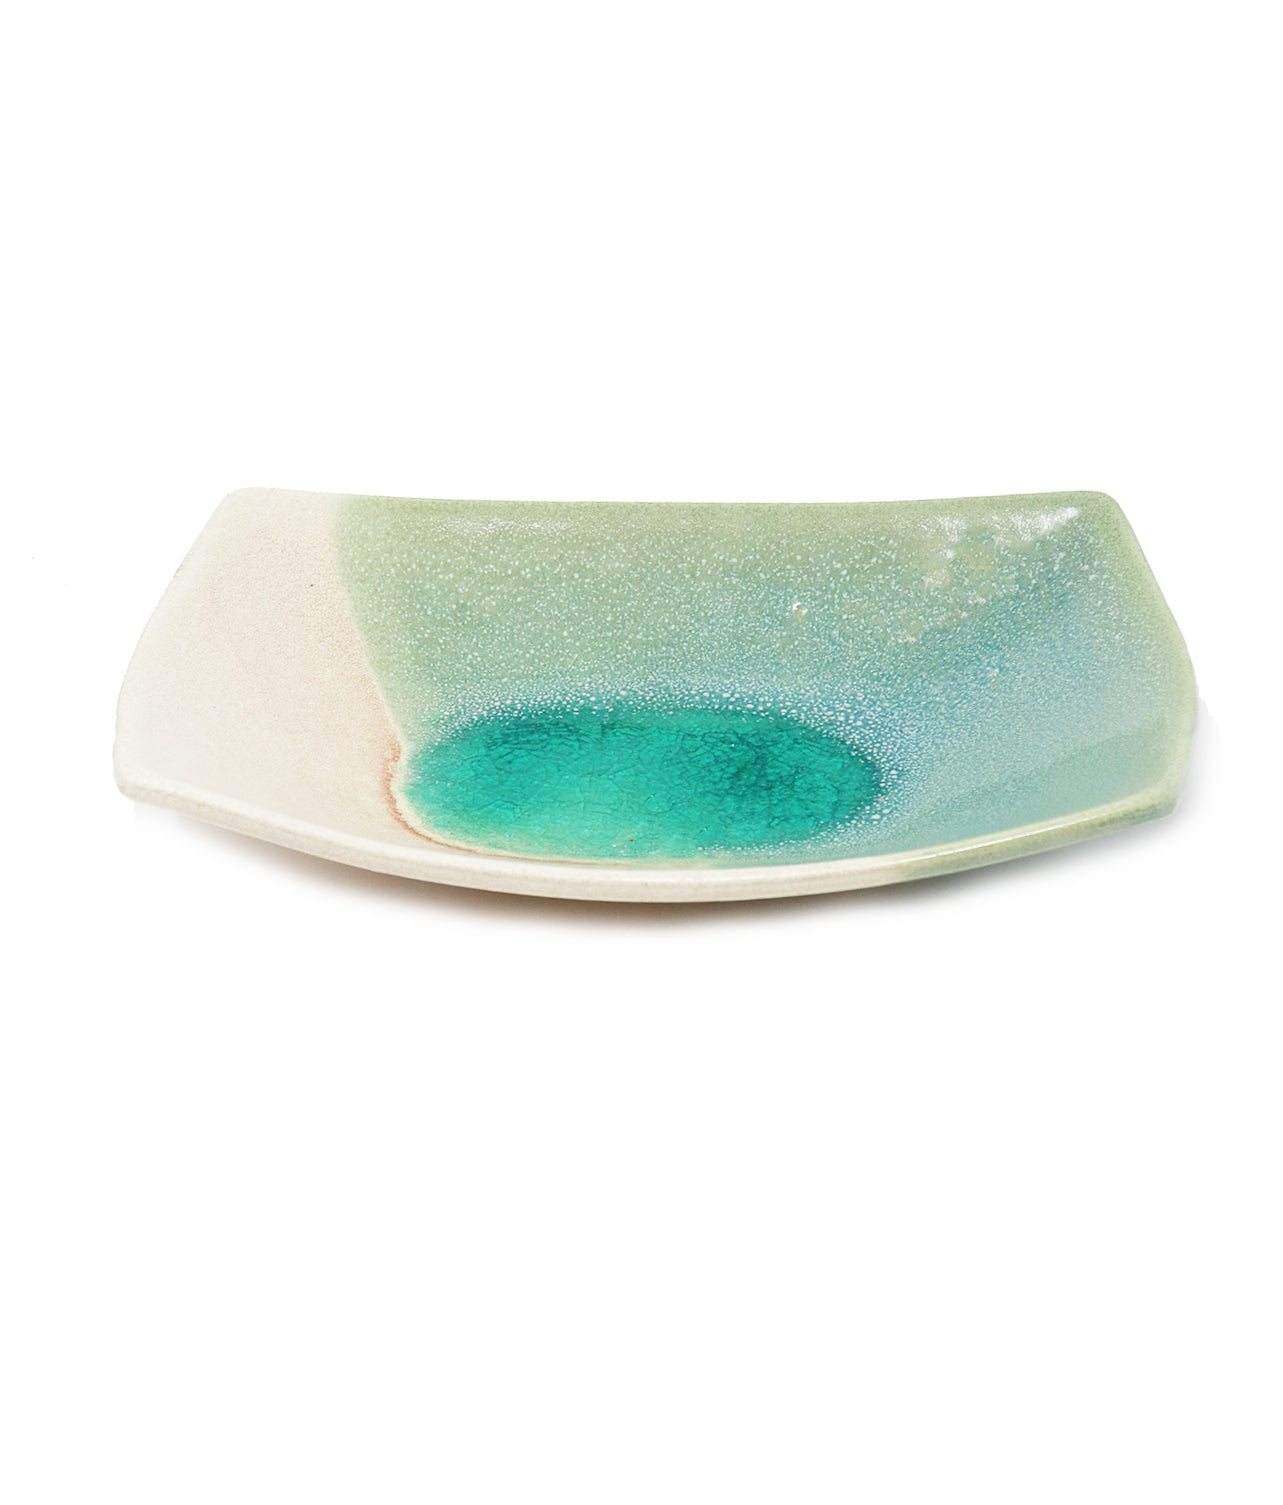 Satterfield Rectangle Bowl with Glass